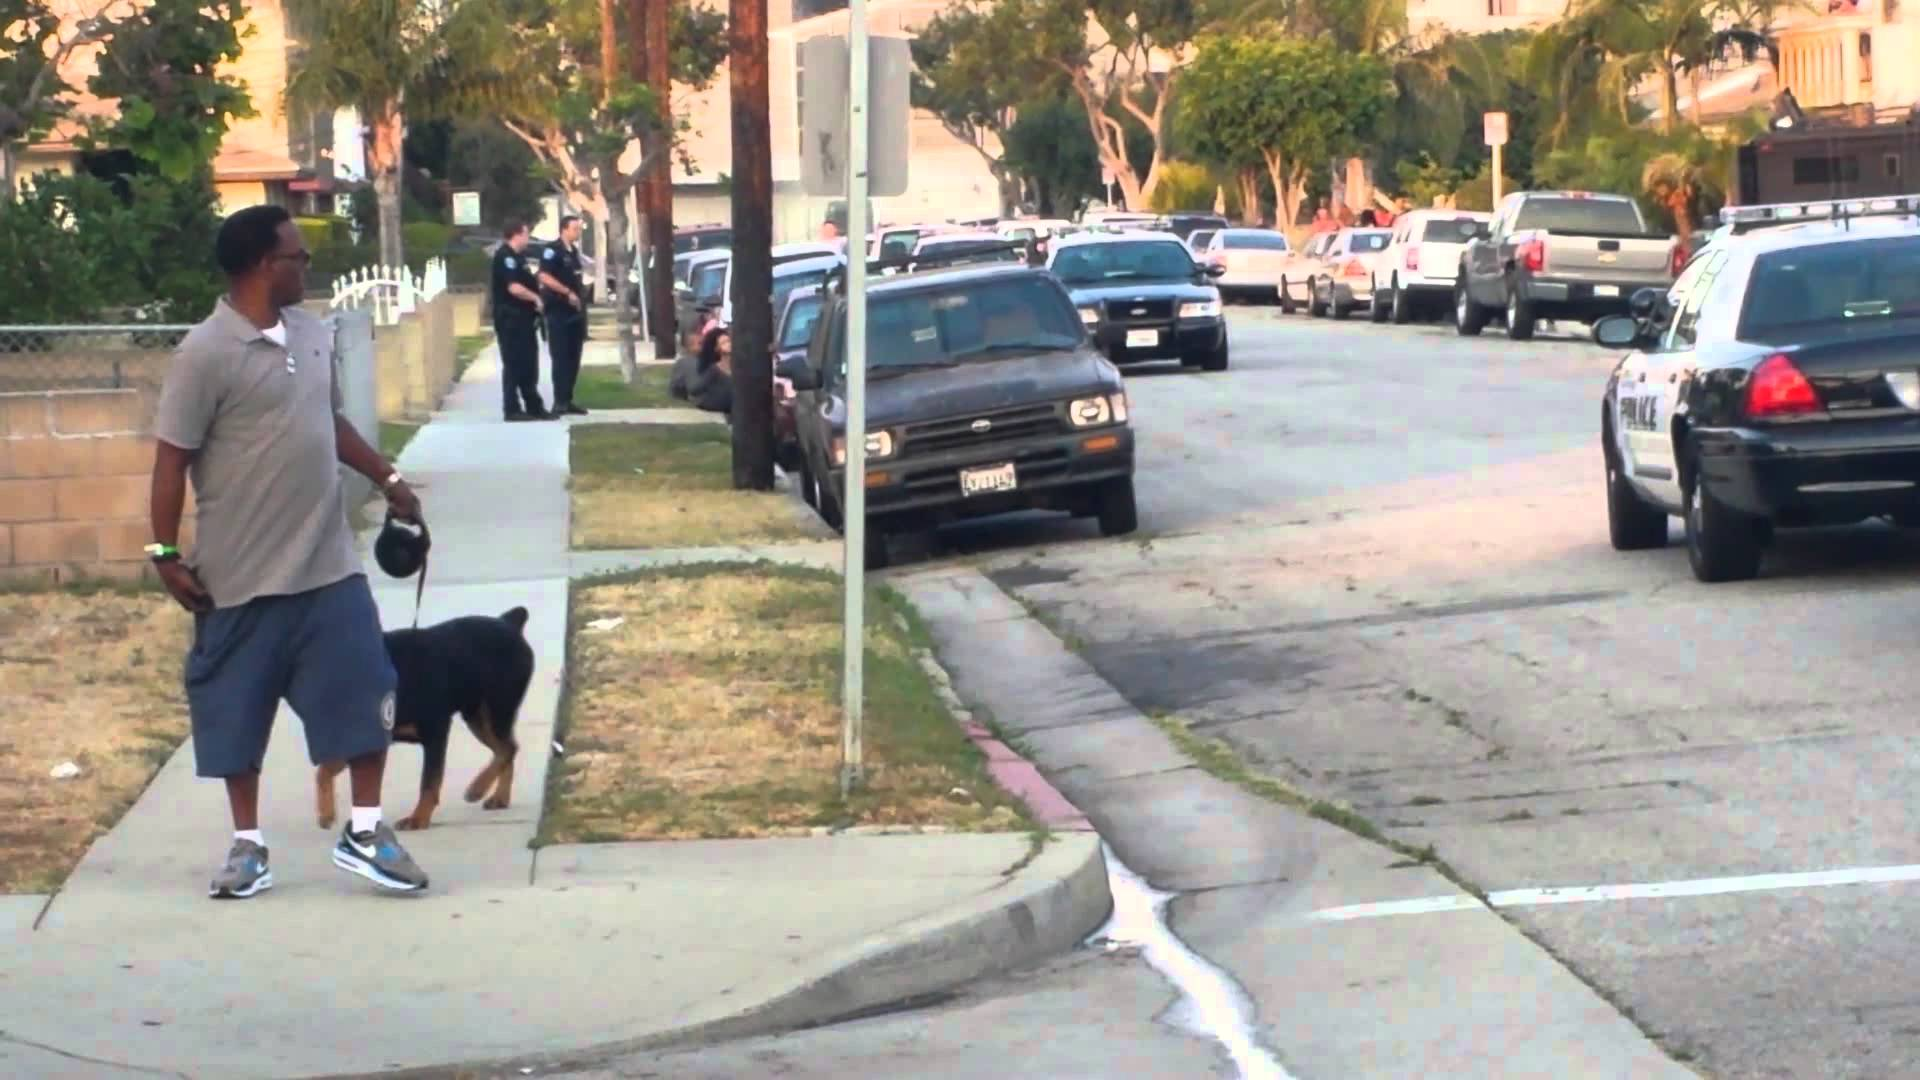 Petitions about the Hawthorne CA police shooting of Max the dog